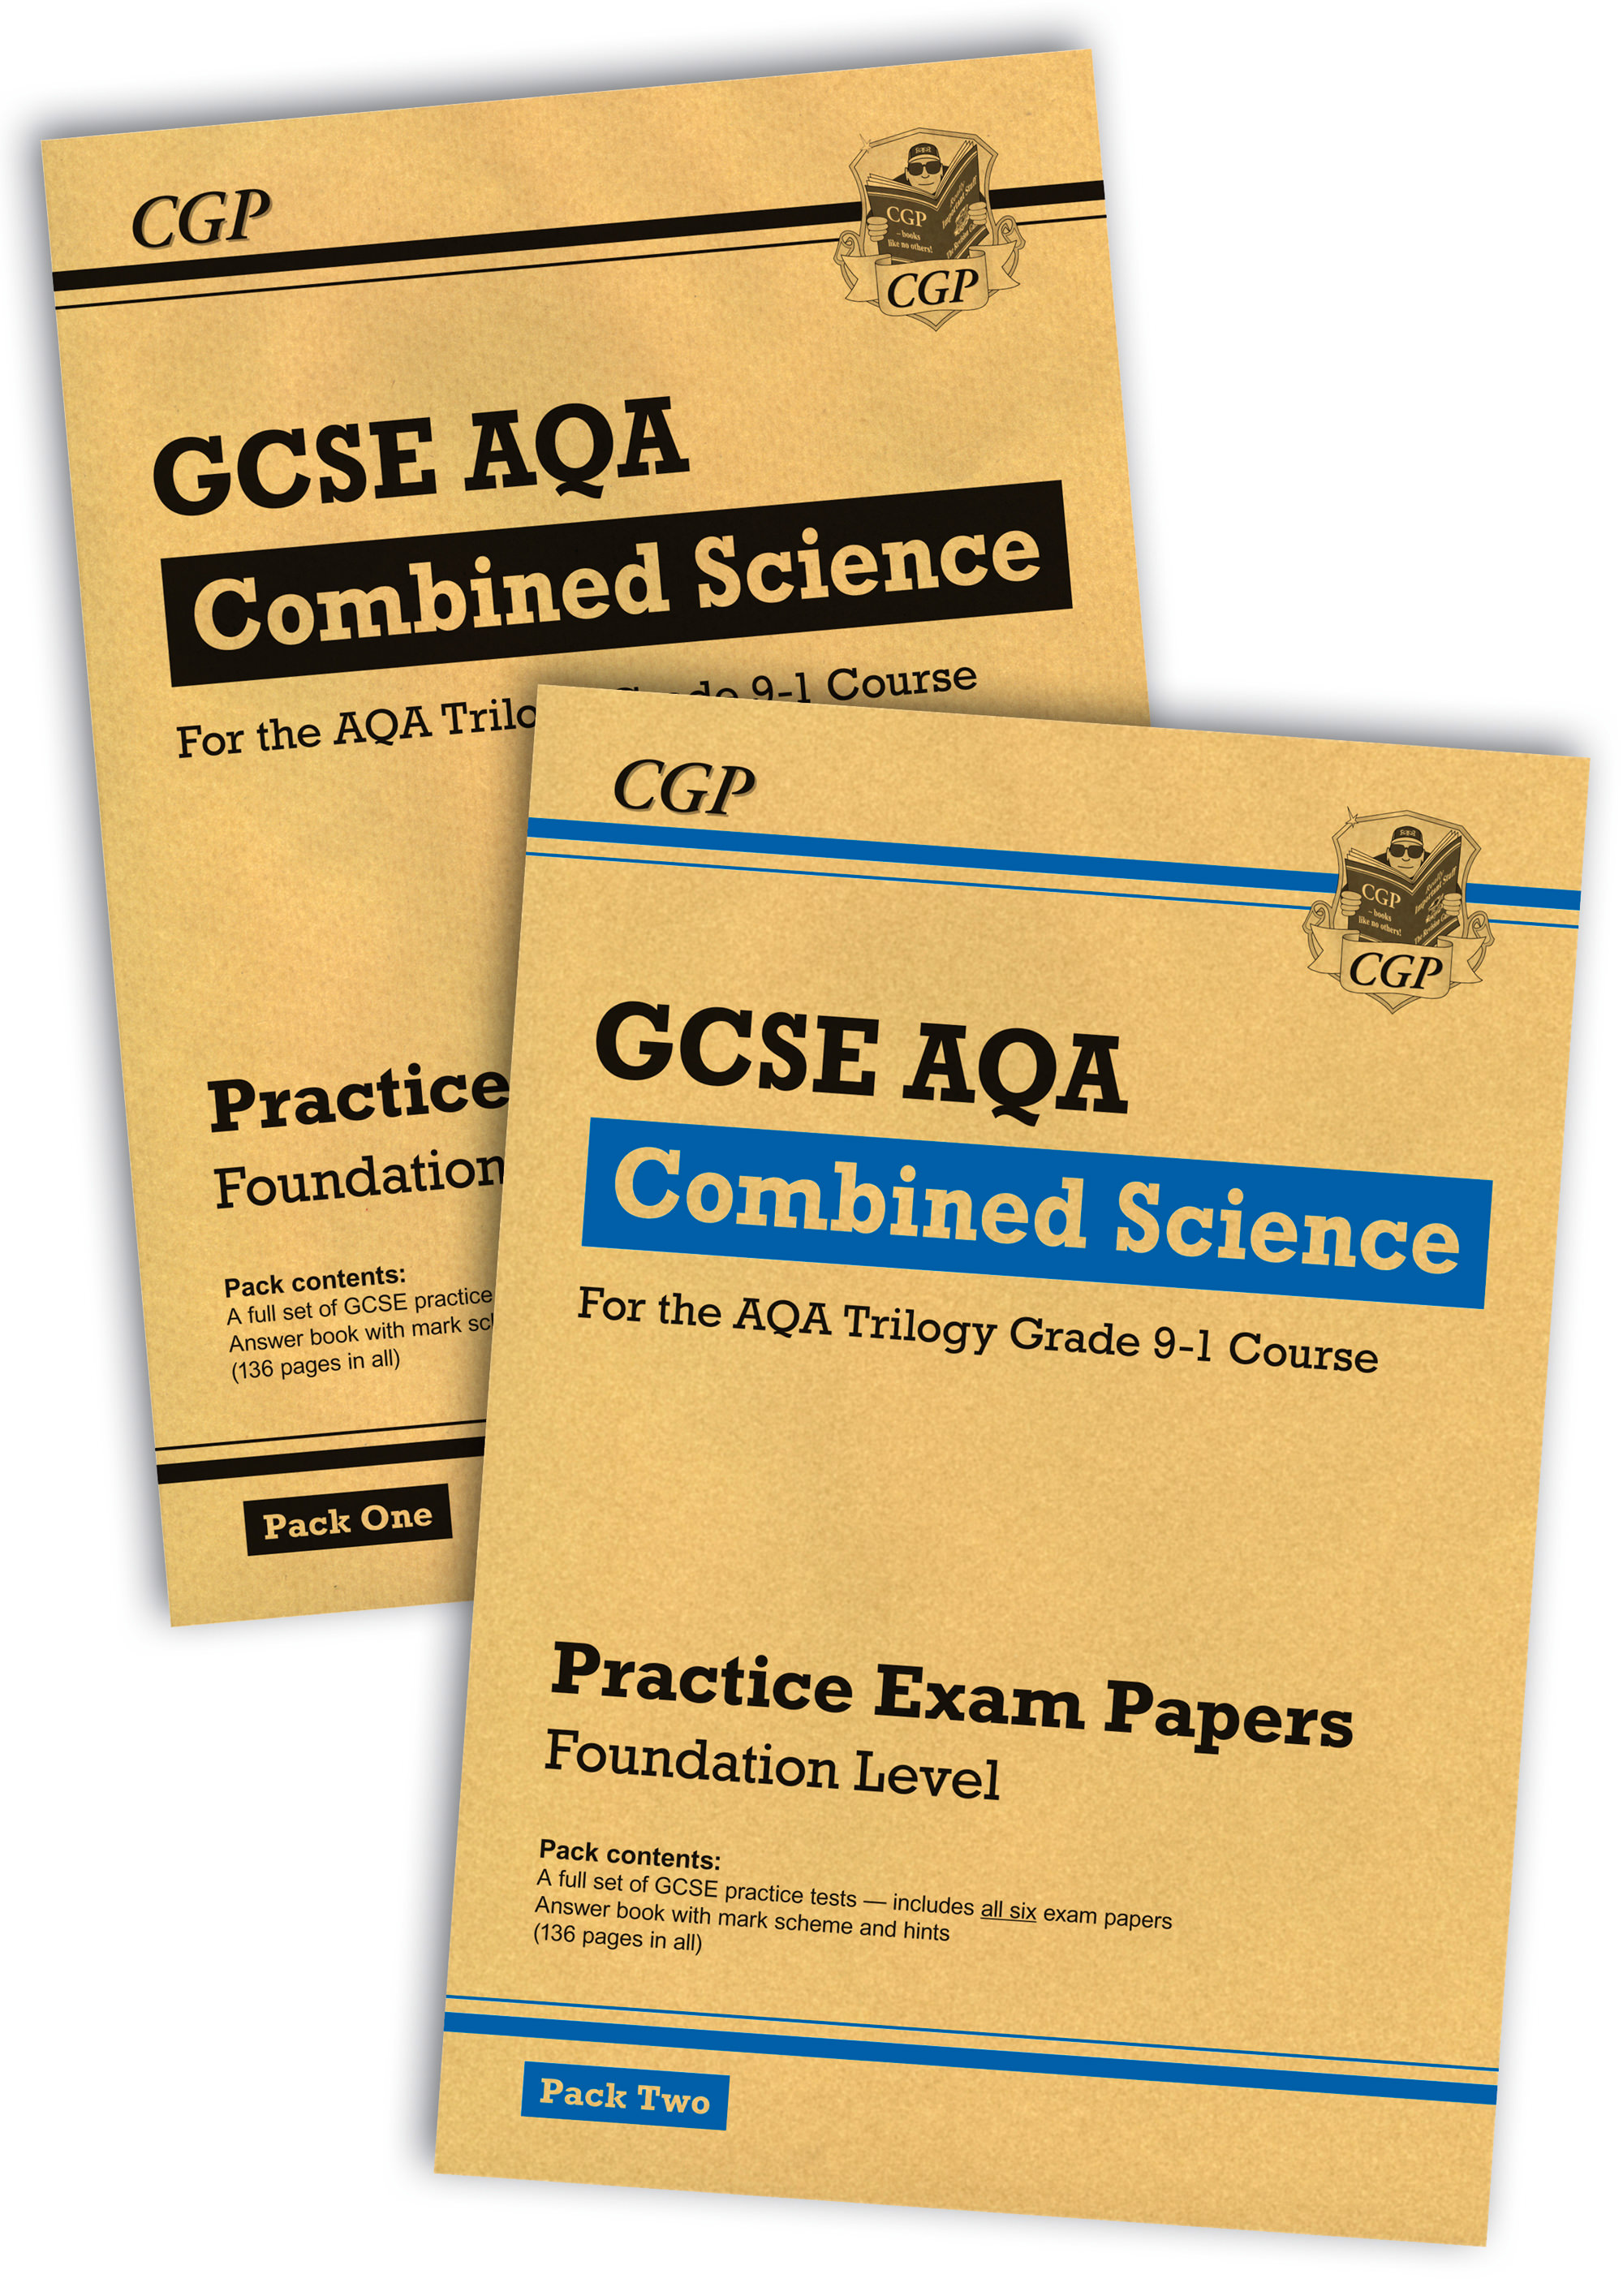 SAFBP41 - Grade 9-1 GCSE Combined Science AQA Practice Papers: Foundation Pack 1 & 2 Bundle